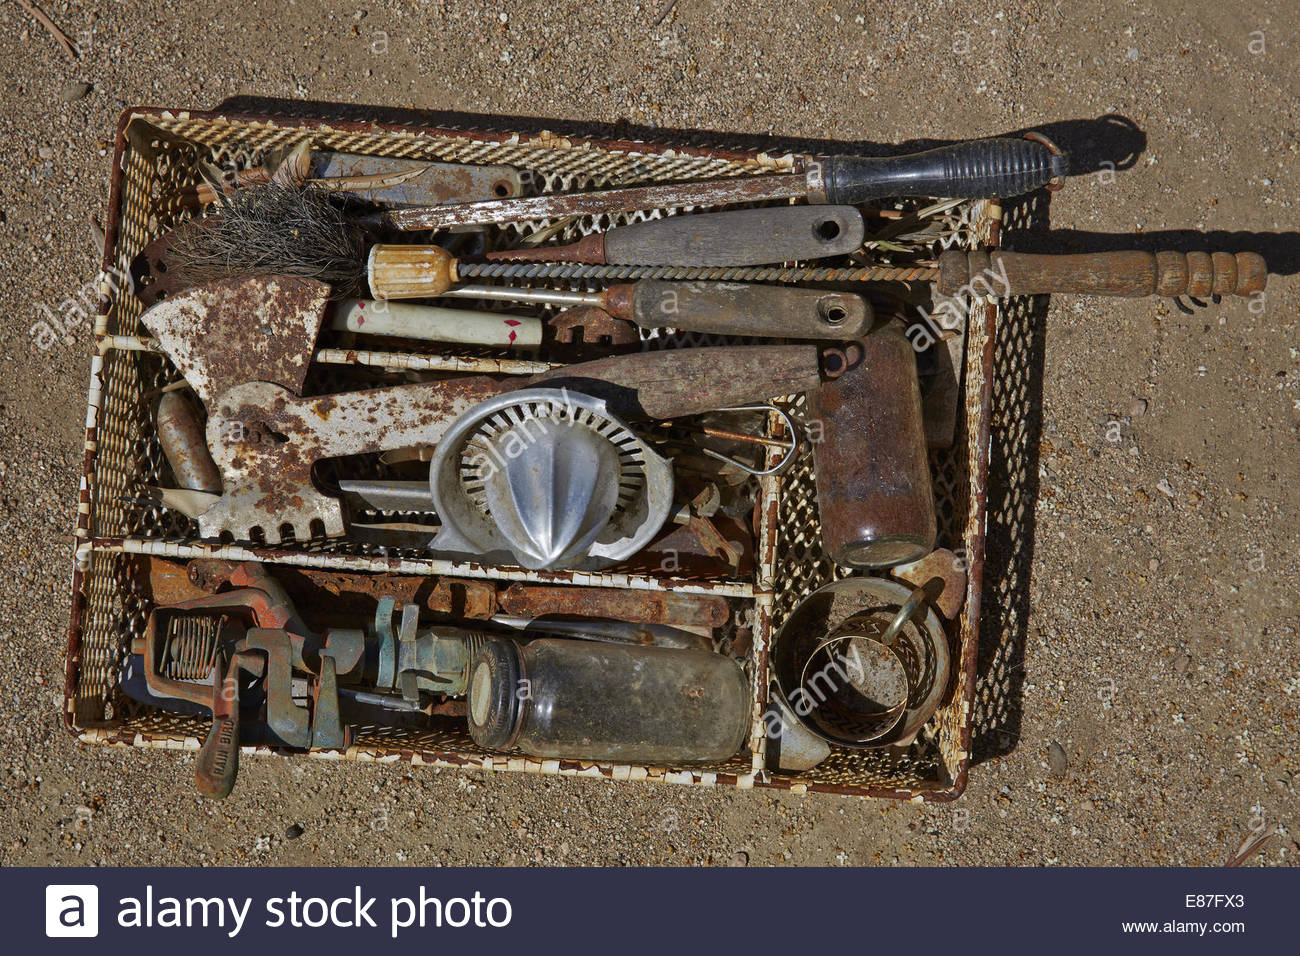 Vintage and rusty group of utensils, kitchenware - Stock Image